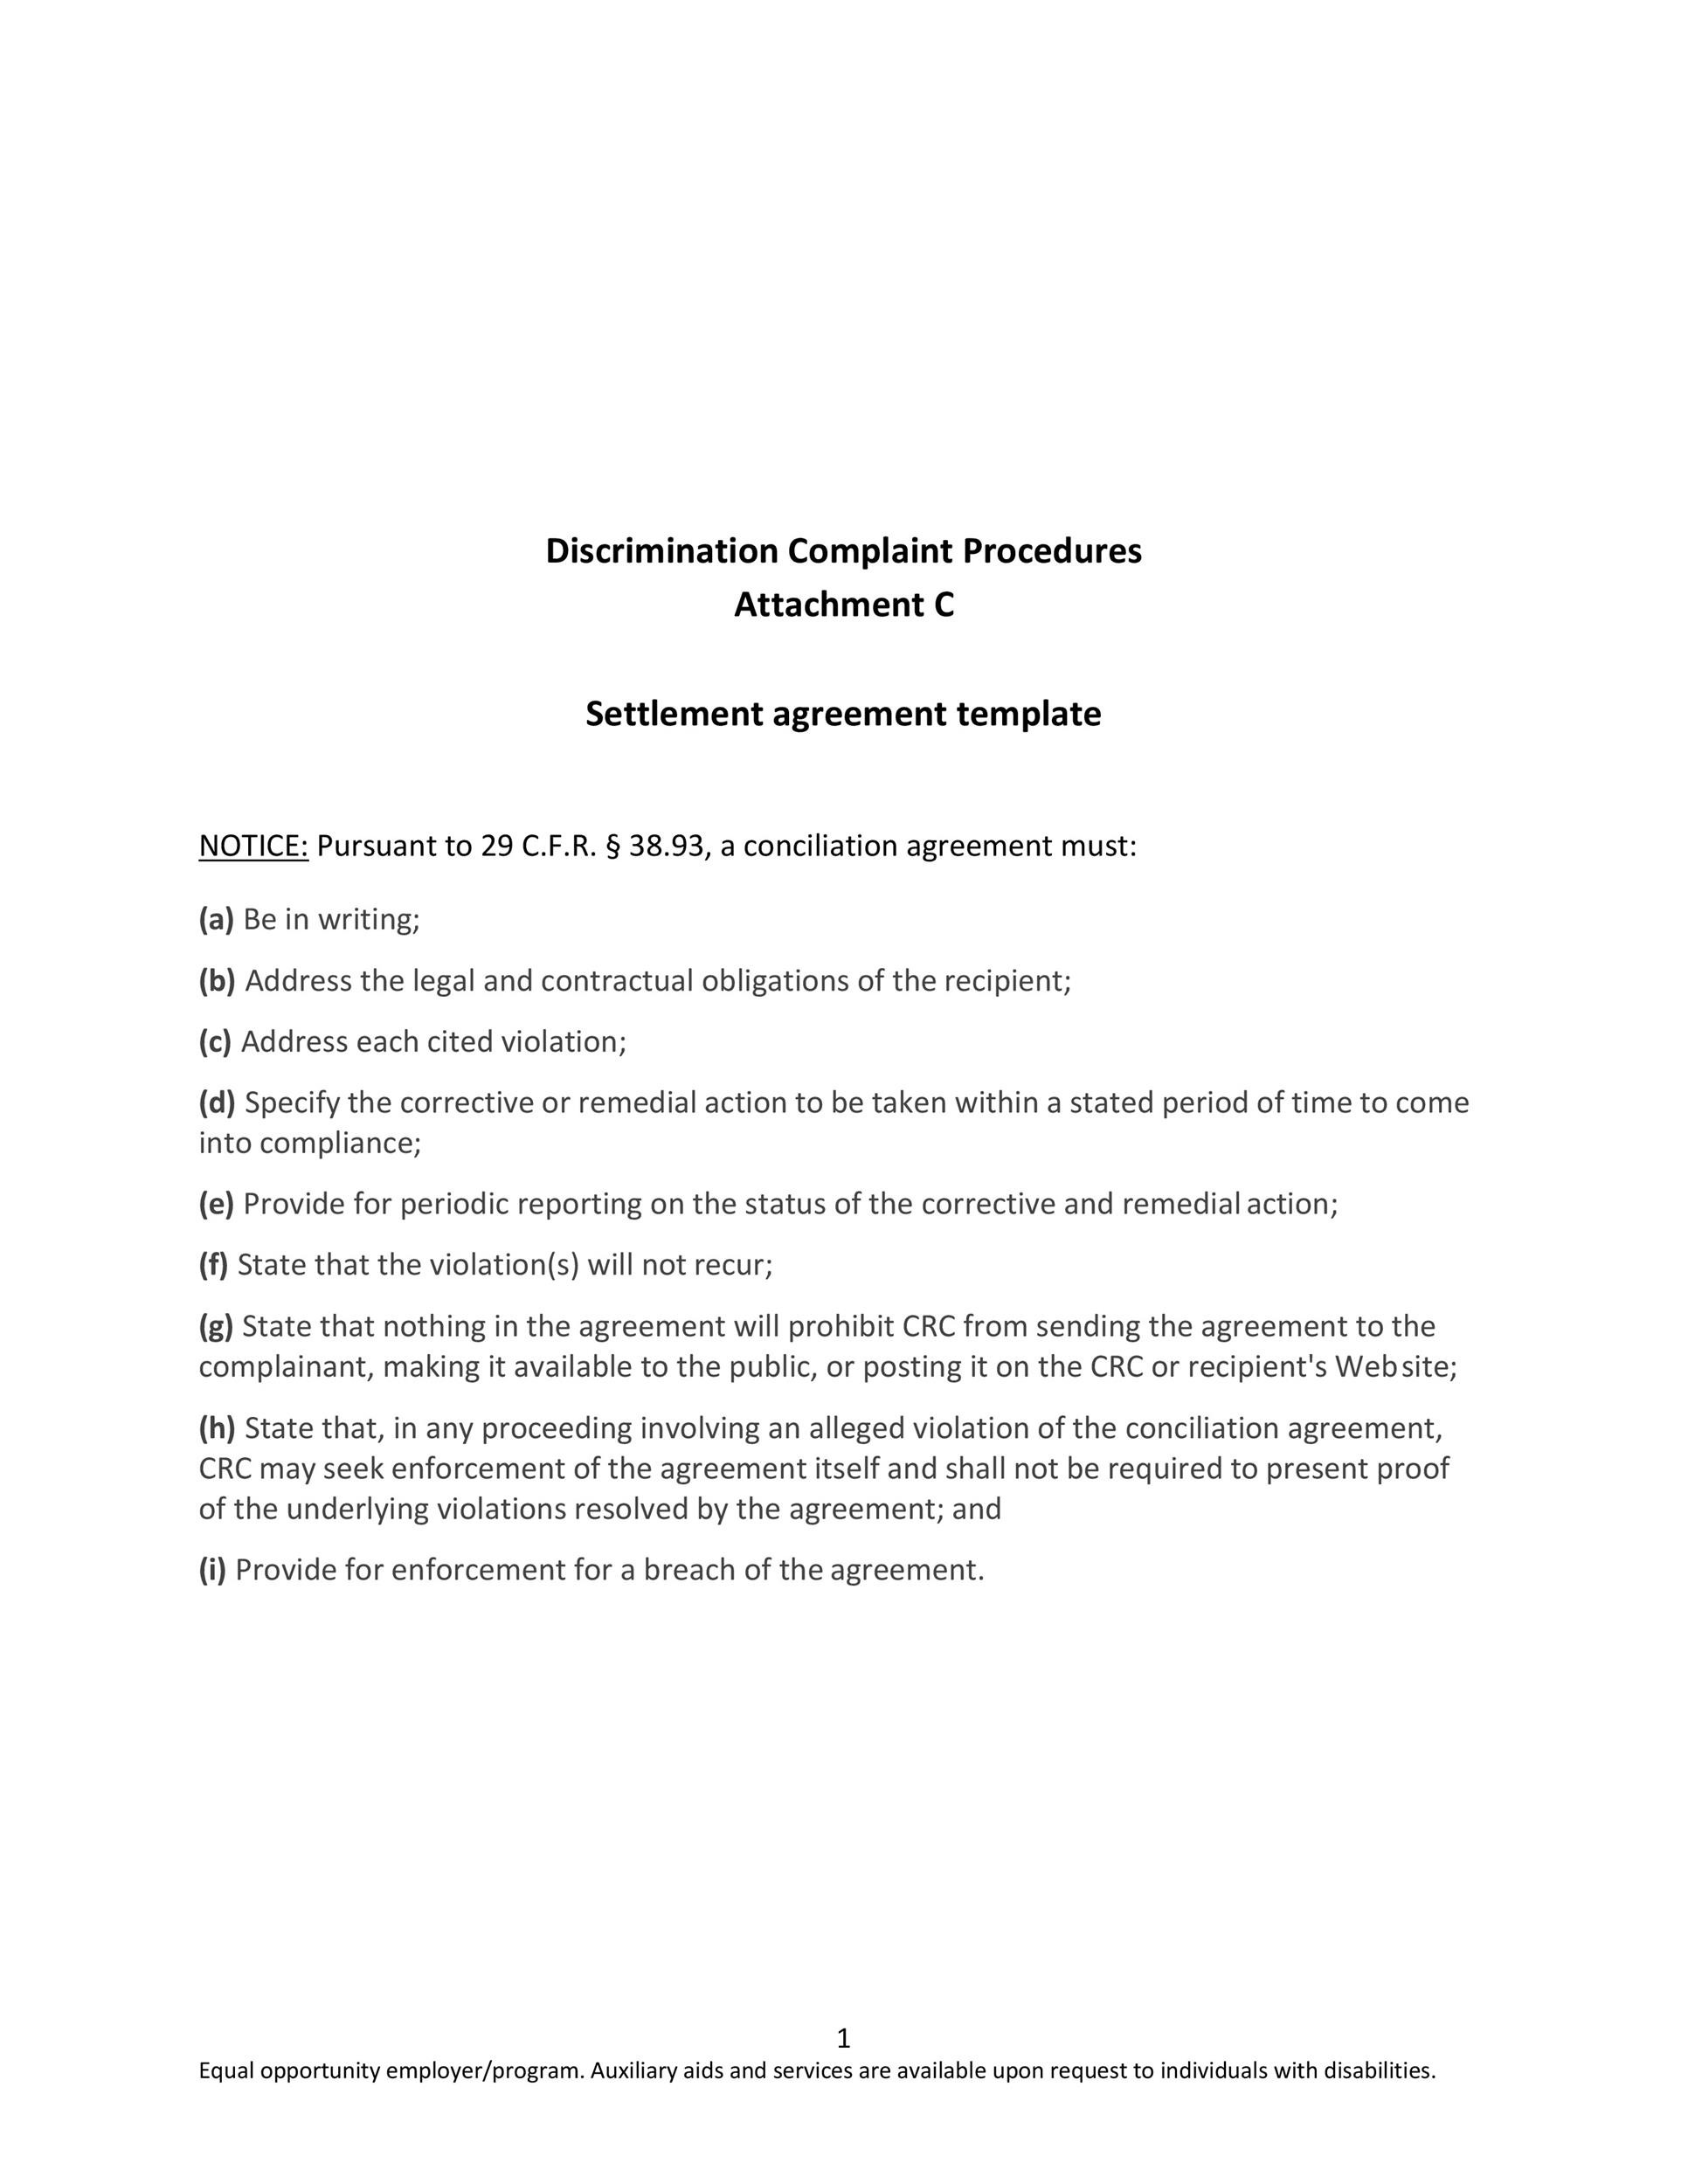 Free settlement agreement 38